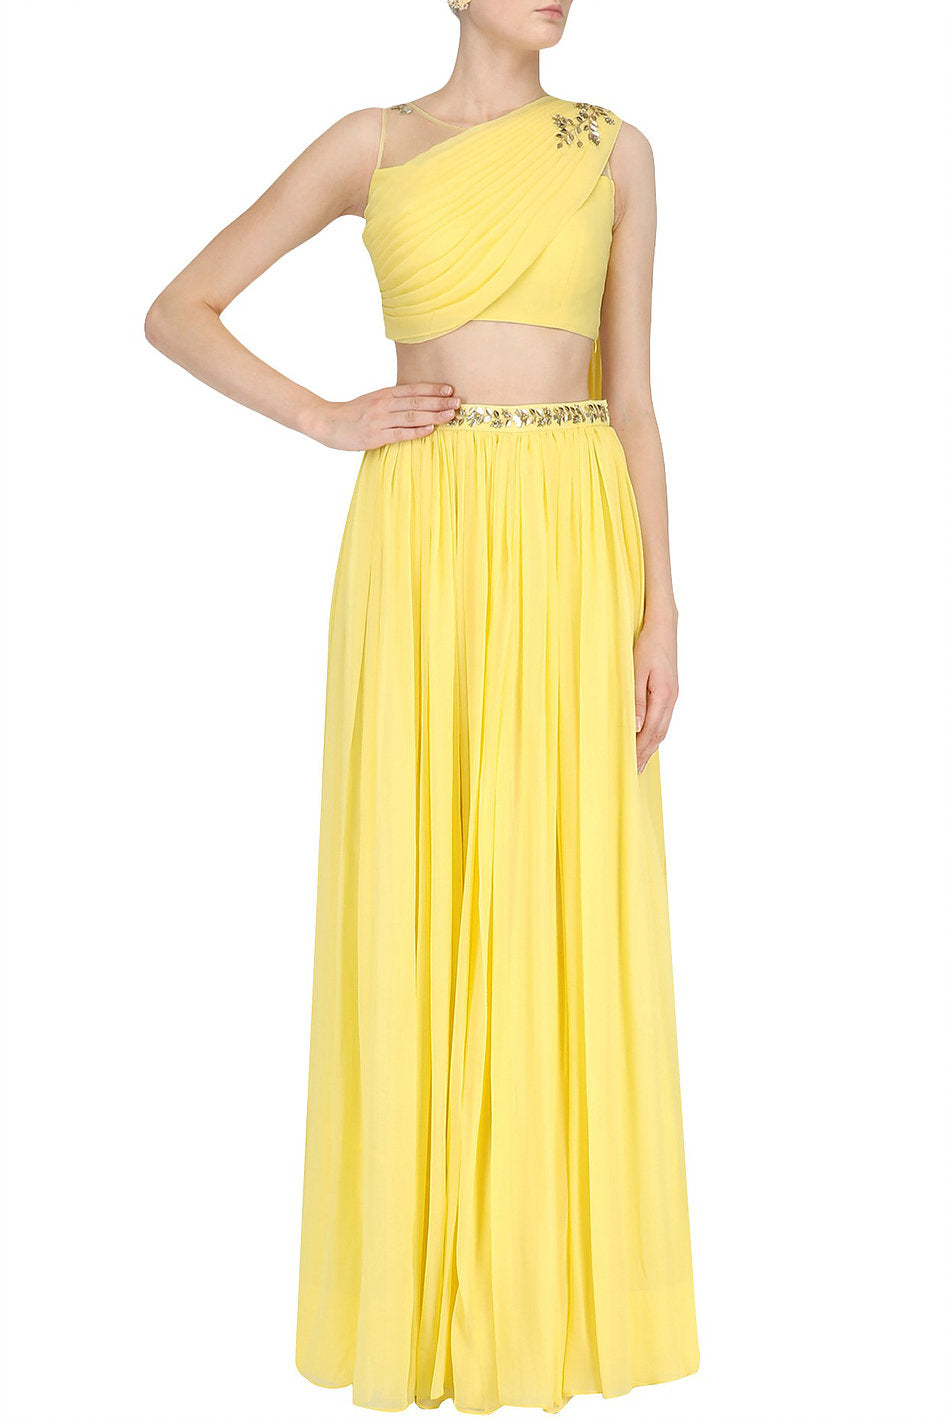 Crop Top Skirt With Drape Dupatta Online in USA